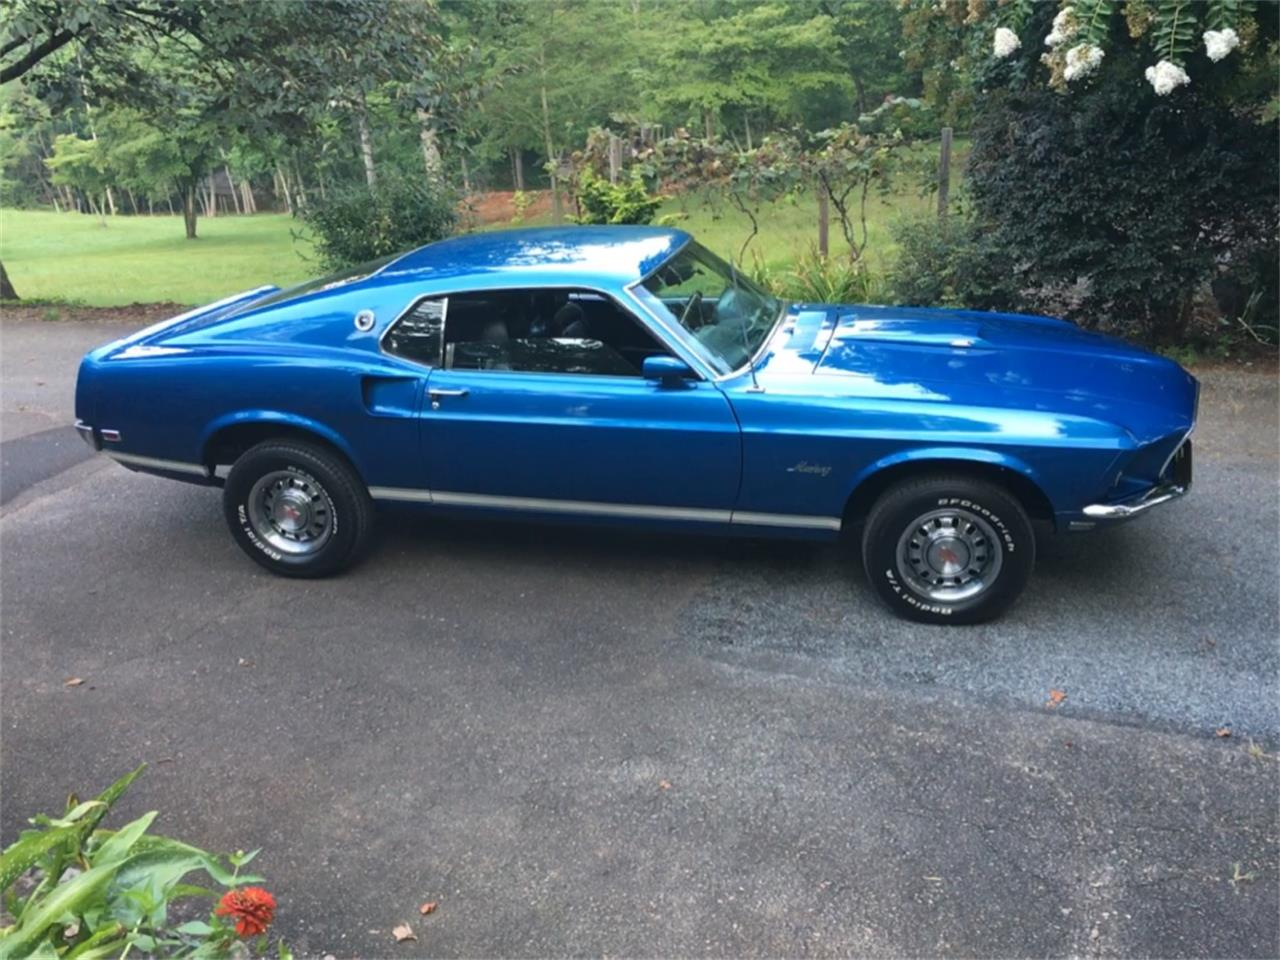 Large picture of classic 1969 ford mustang gt located in cleveland georgia 32900 00 offered by